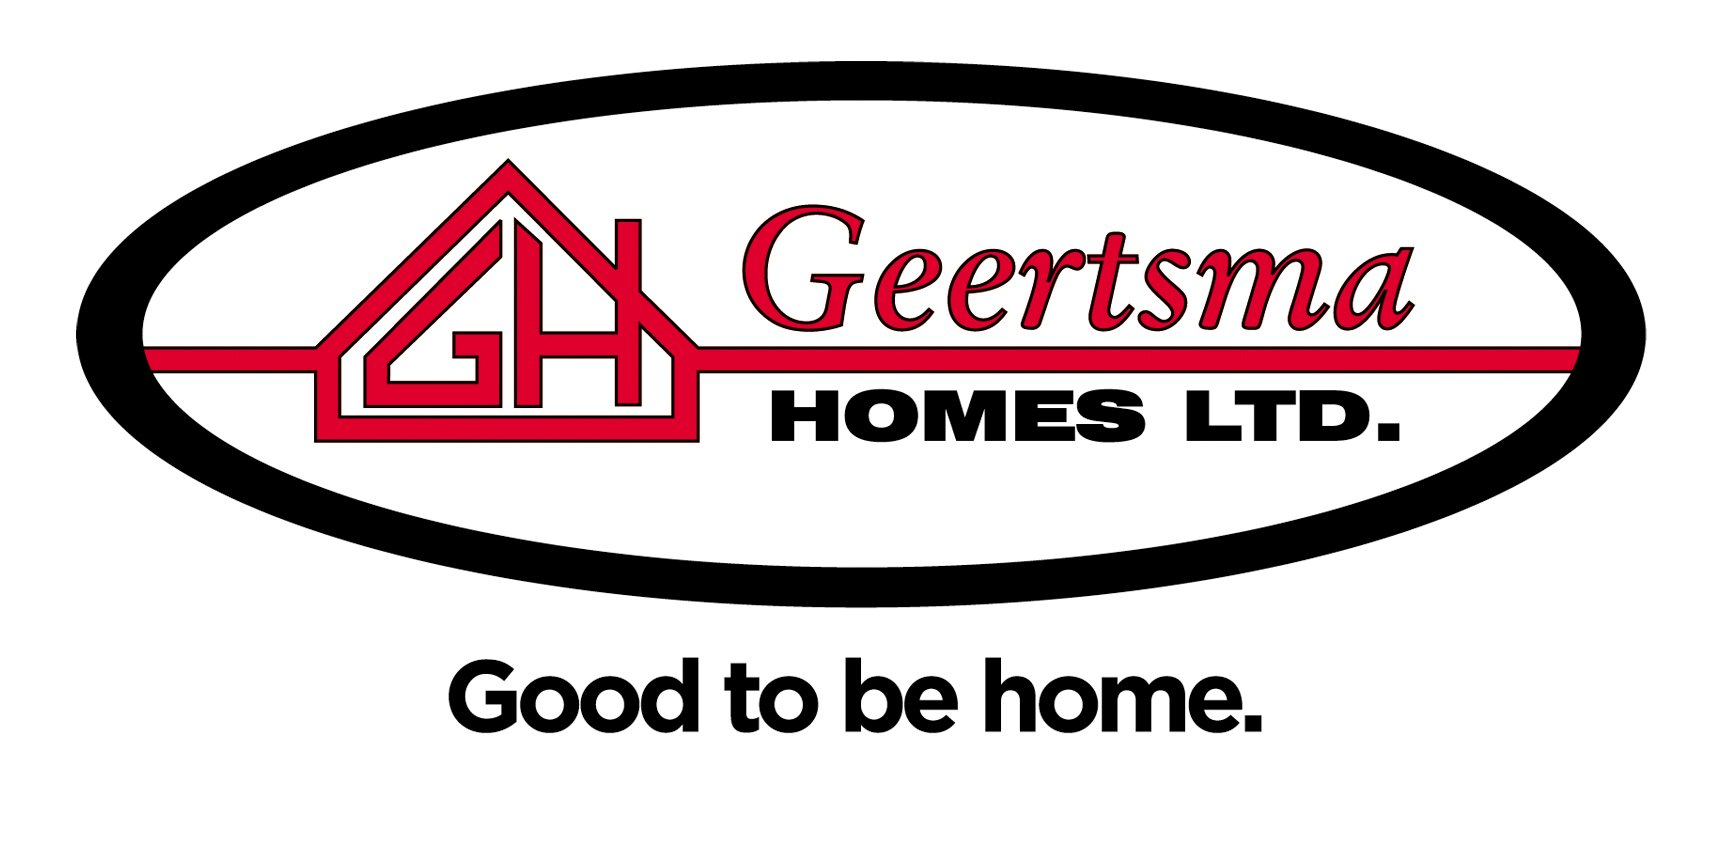 Geertsma Homes Ltd. (Academy Place)